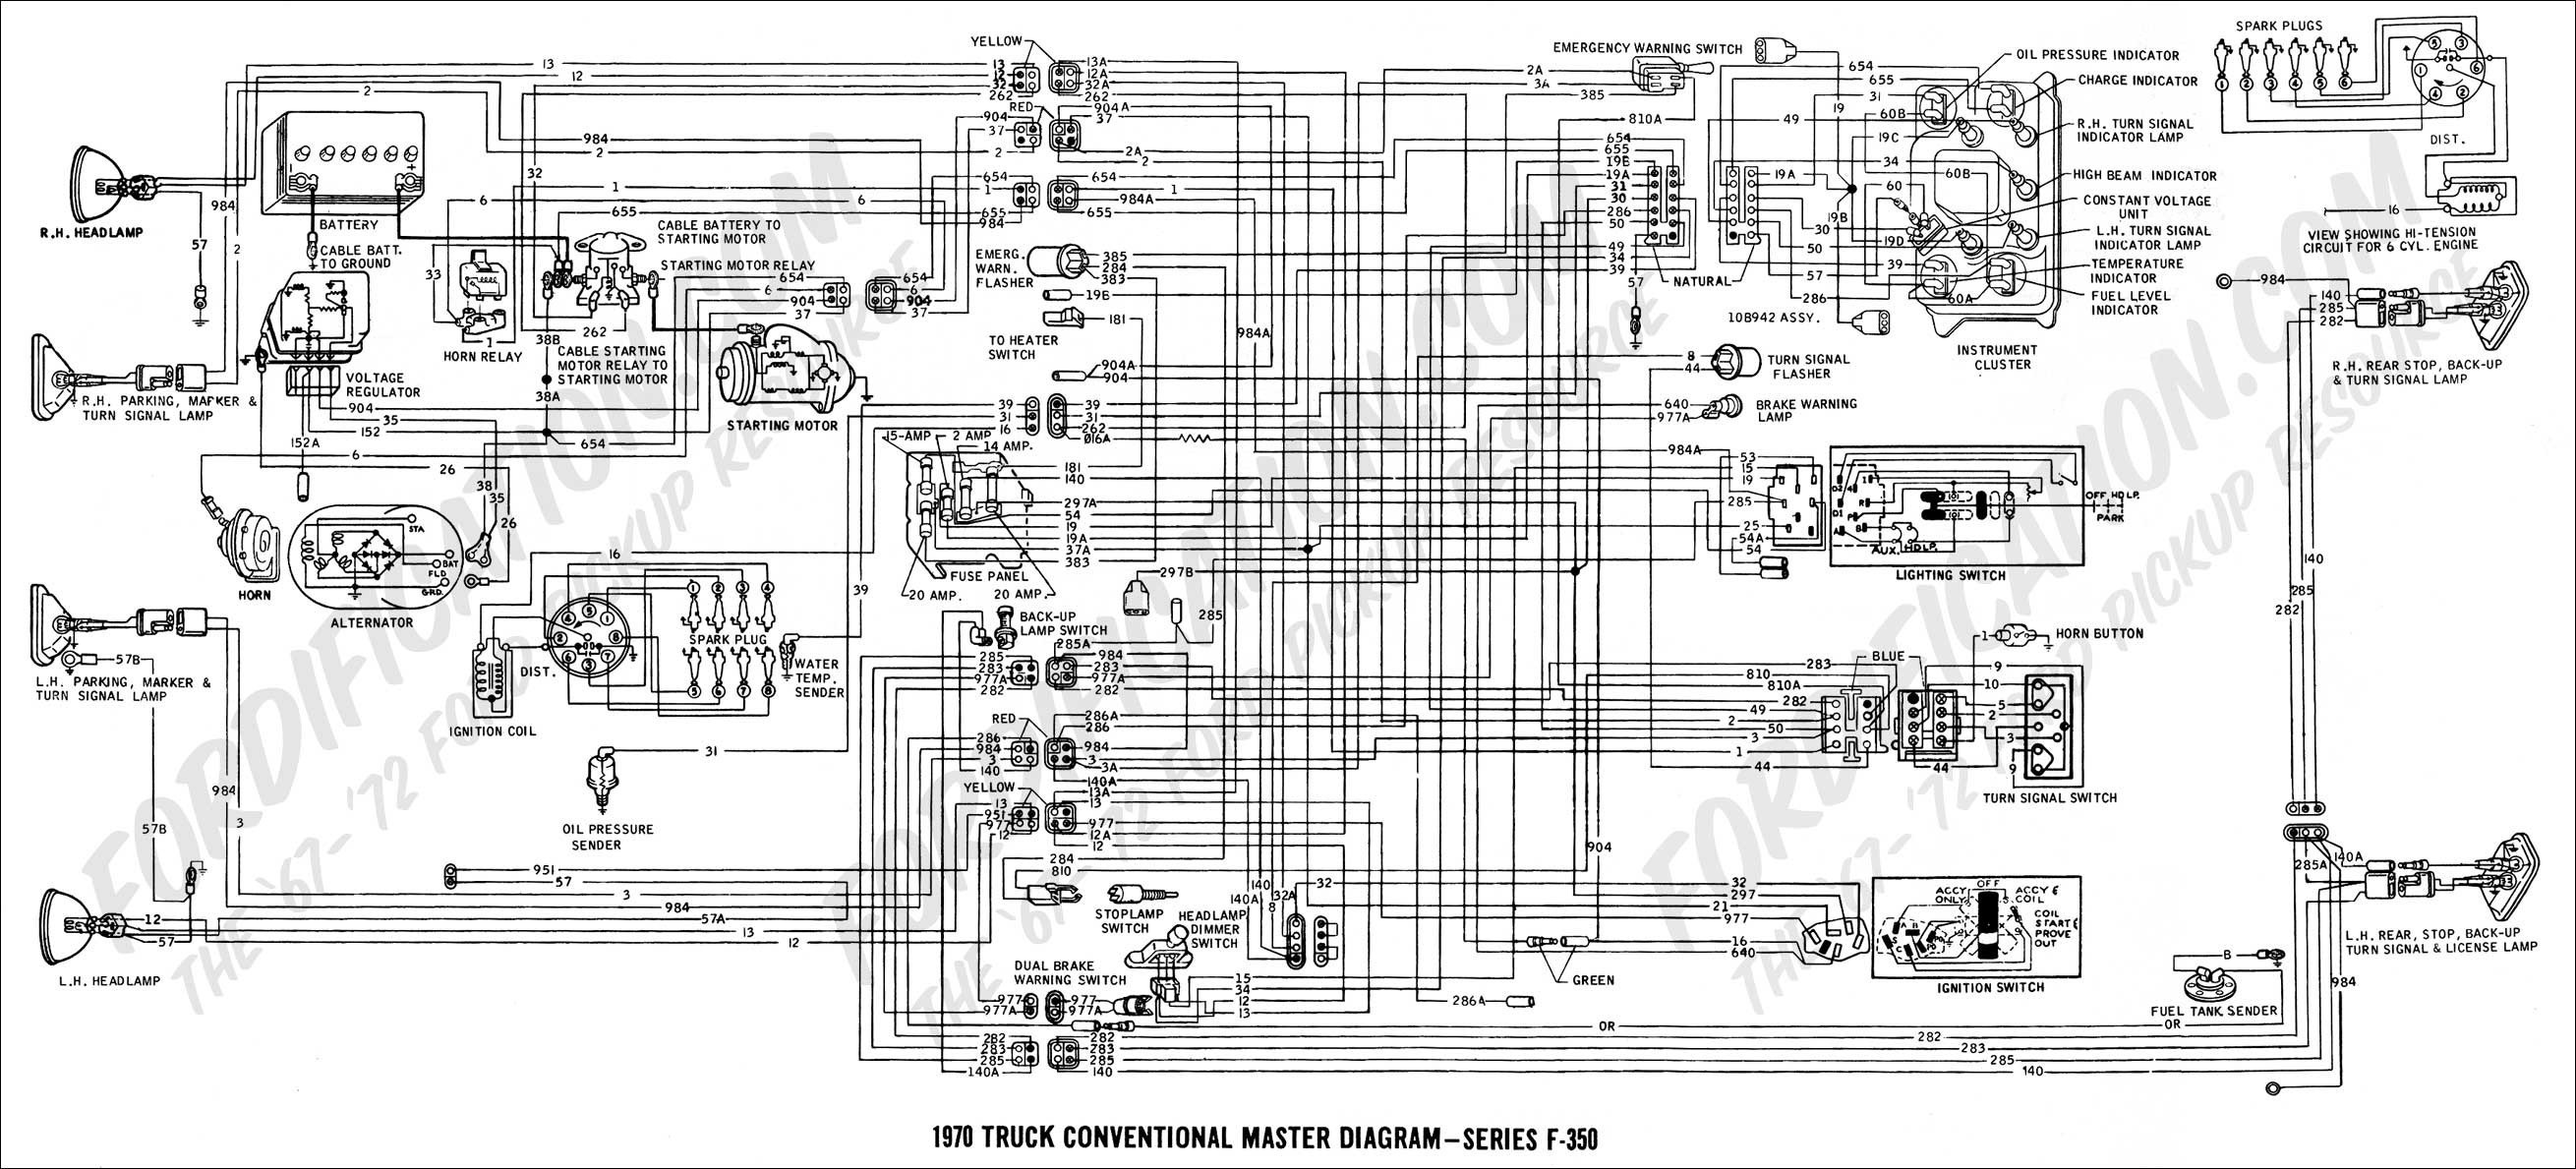 2003 Ford Windstar Wiring Diagram 1998 F150 4 2 V6 Fuse Box Escape Engine New Radio Harness Of